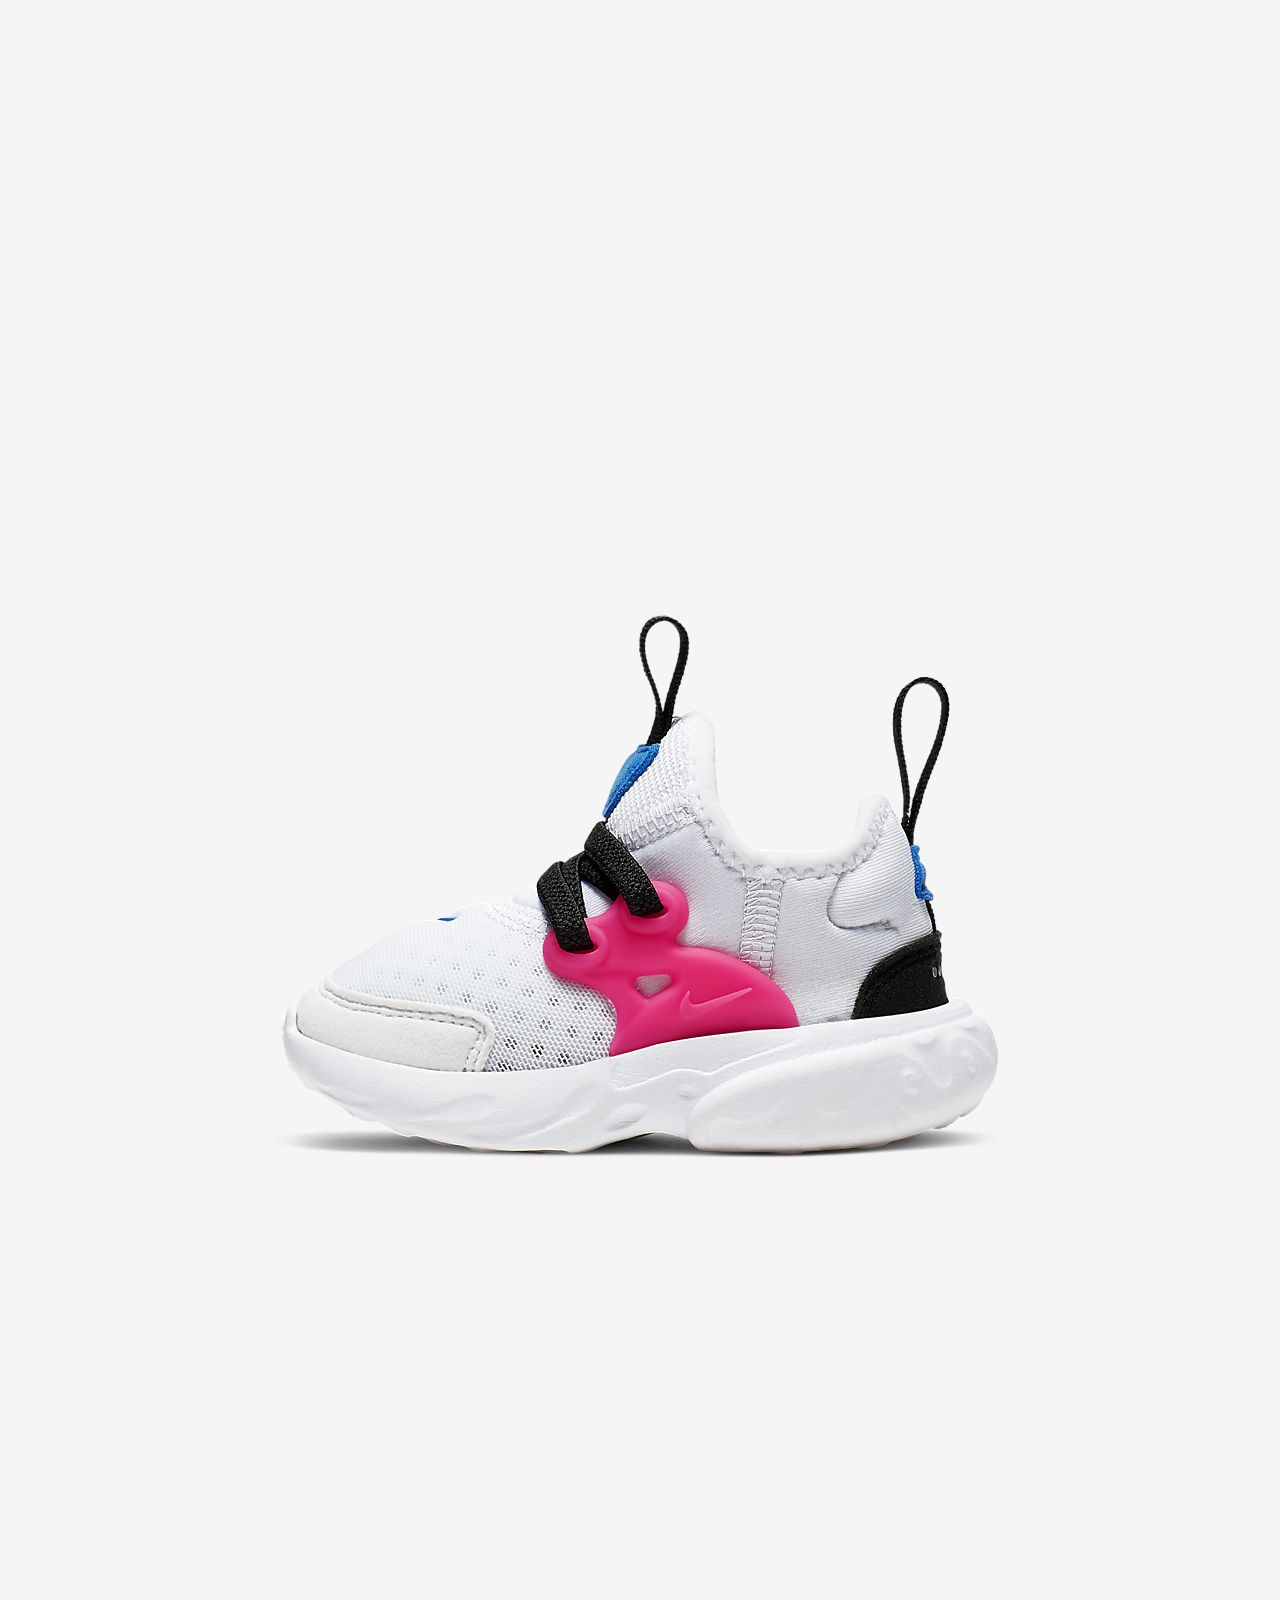 Nike RT Presto Baby & Toddler Shoe